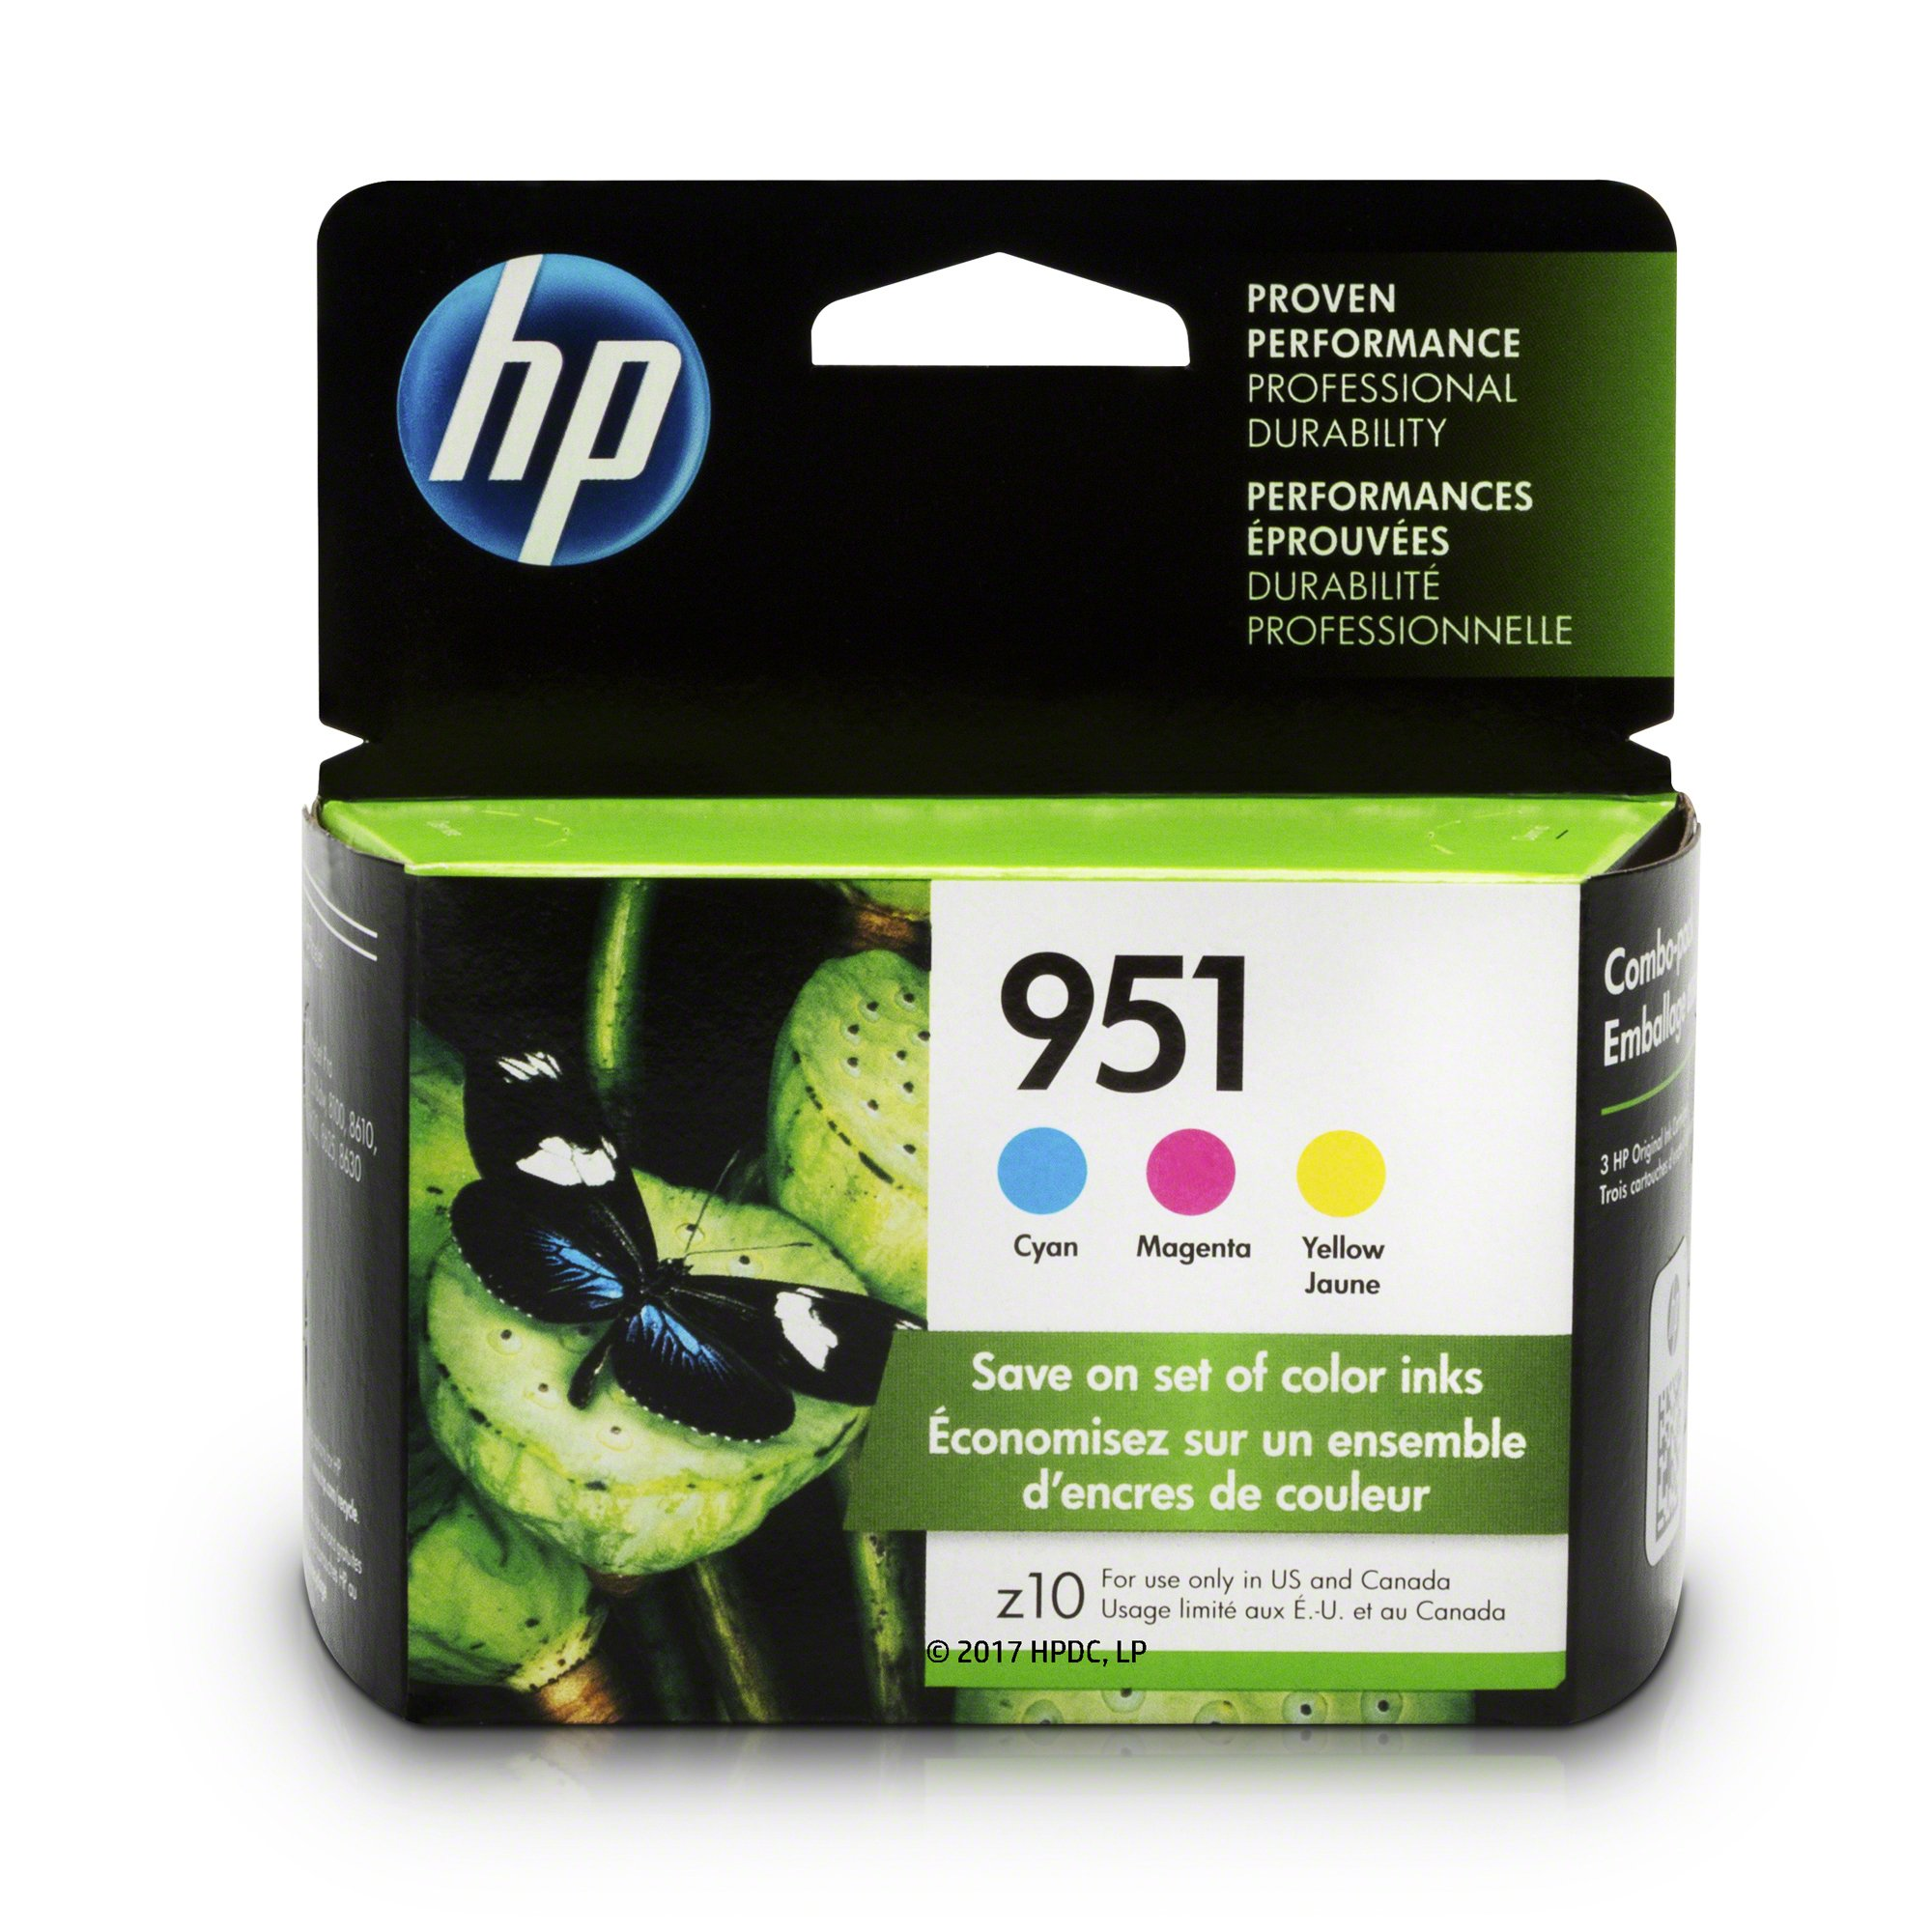 HP CN051AN#140  951 Ink Cartridges Cyan, Magenta & Yellow, 3 Ink Cartridges (CN050AN, CN051AN, CN052AN) for  Officejet Pro 251, 276, 8100, 8600, 8610, 8620, 8625, 8630